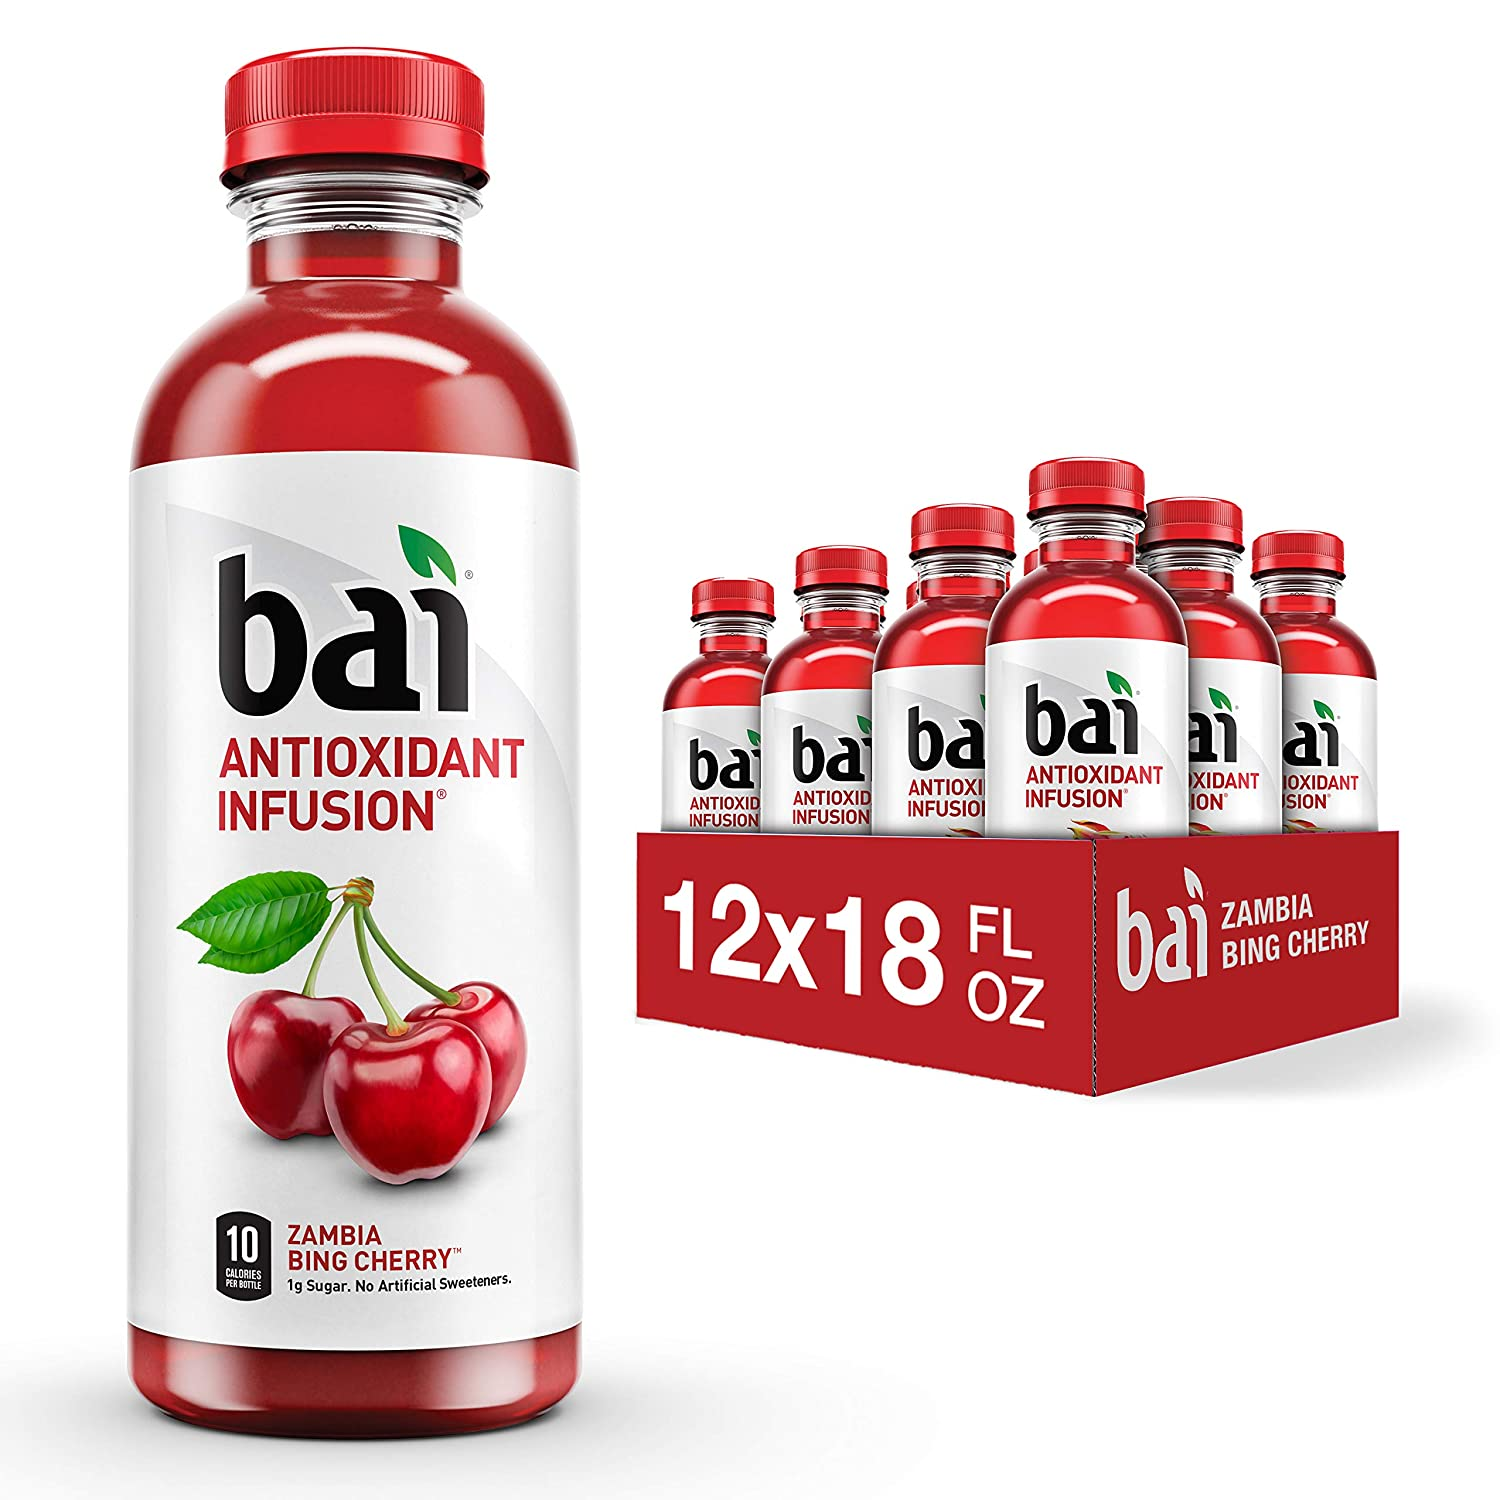 Bai Flavored Water, Zambia Bing Cherry, Antioxidant Infused Drinks, 18 Fluid Ounce Bottles, 12 count